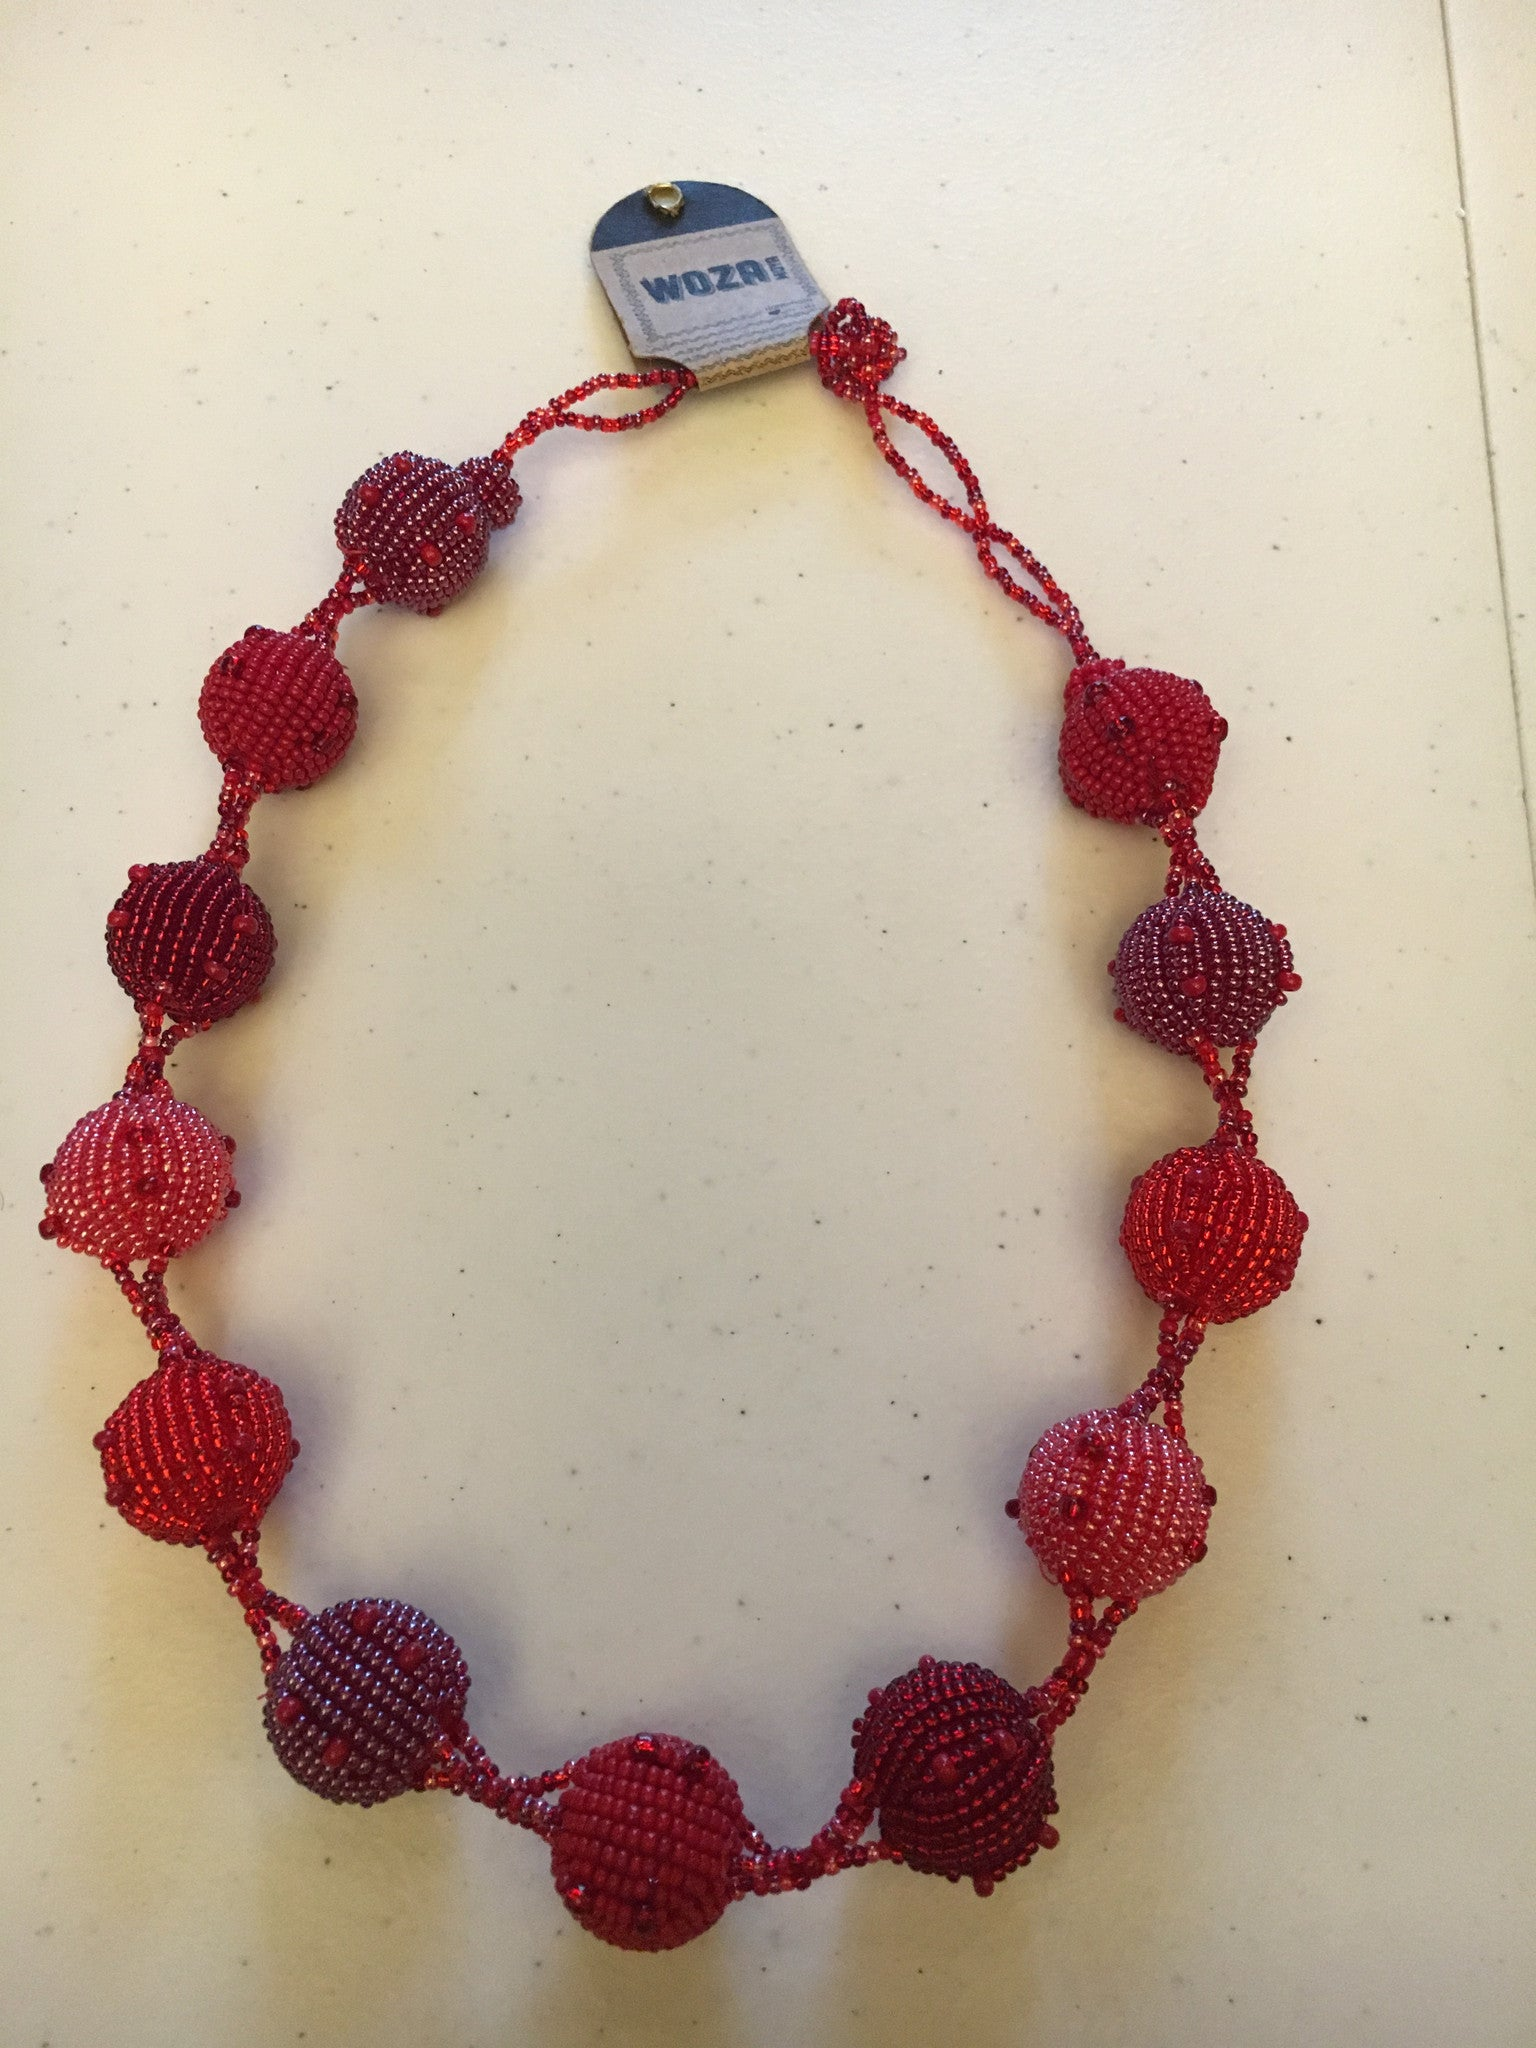 Fruit Ball Necklace - Shades of Red: Cranberry, True Red, Pink Red - Inspired Luxe